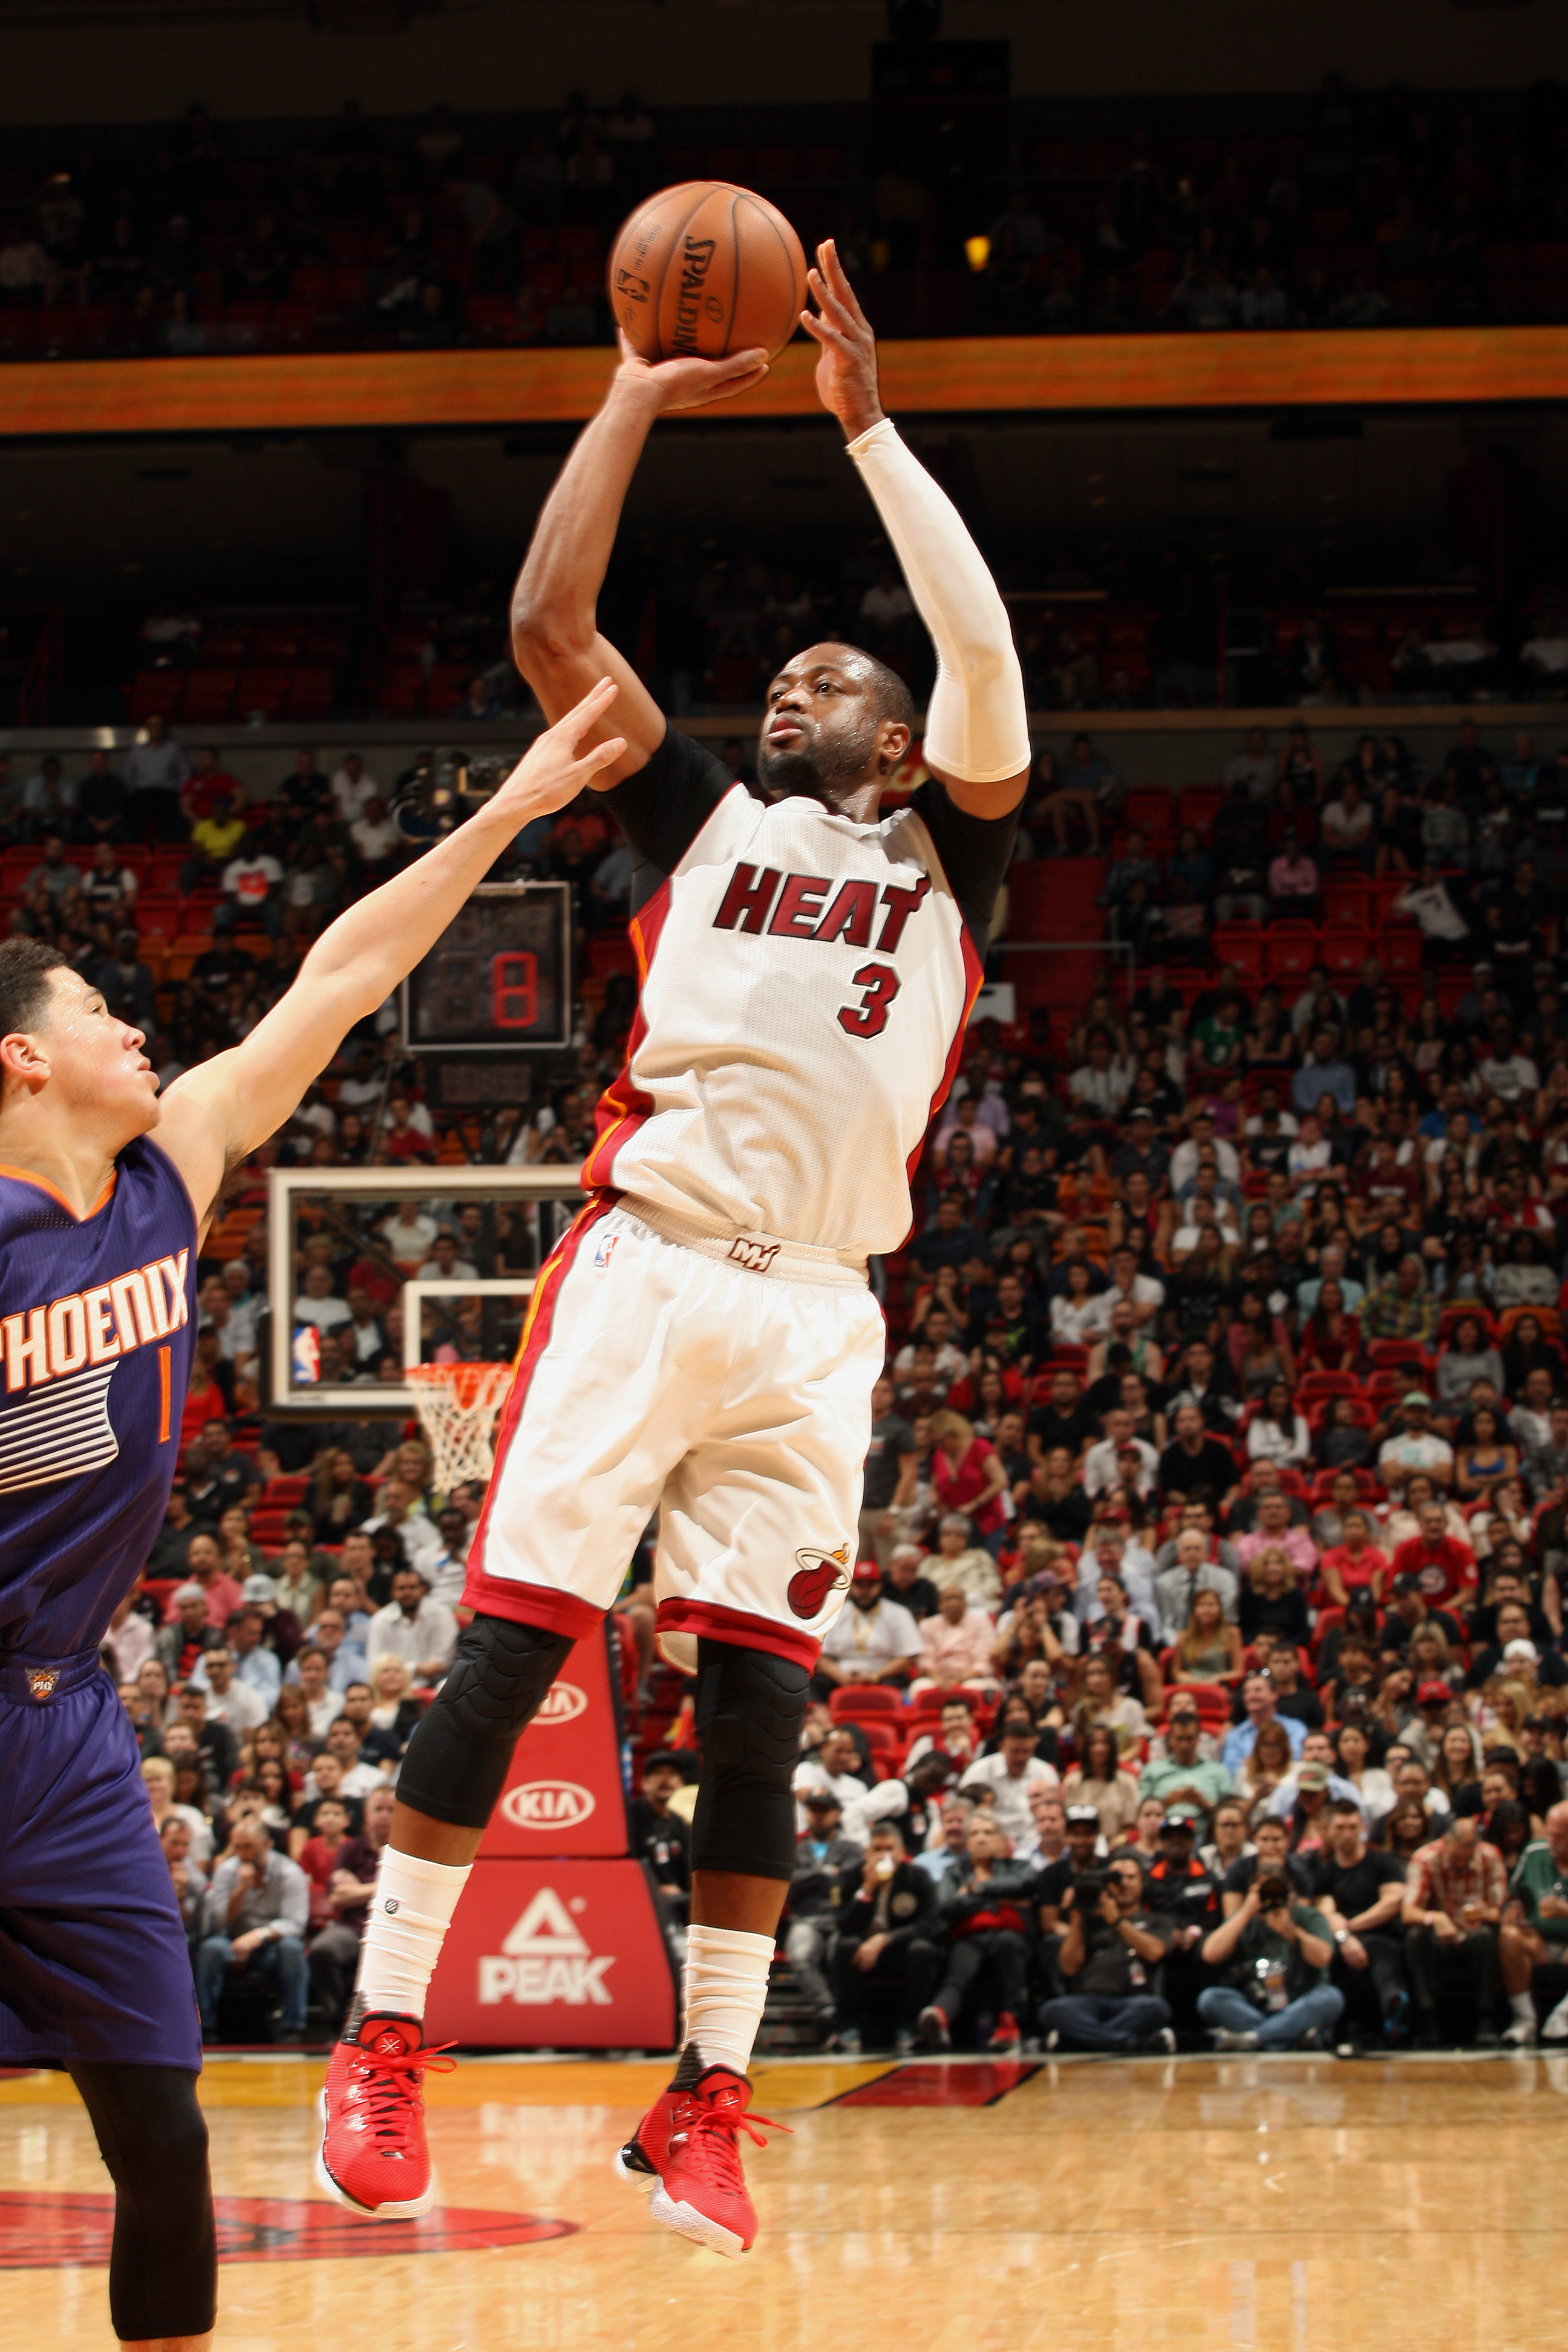 MIAMI, FL  - MARCH 3: Dwyane Wade #3 of the Miami Heat shoots against the Phoenix Suns during the game on March 3, 2016 at American Airlines Arena in Miami, Florida. (Photo by Oscar Baldizon/NBAE via Getty Images)